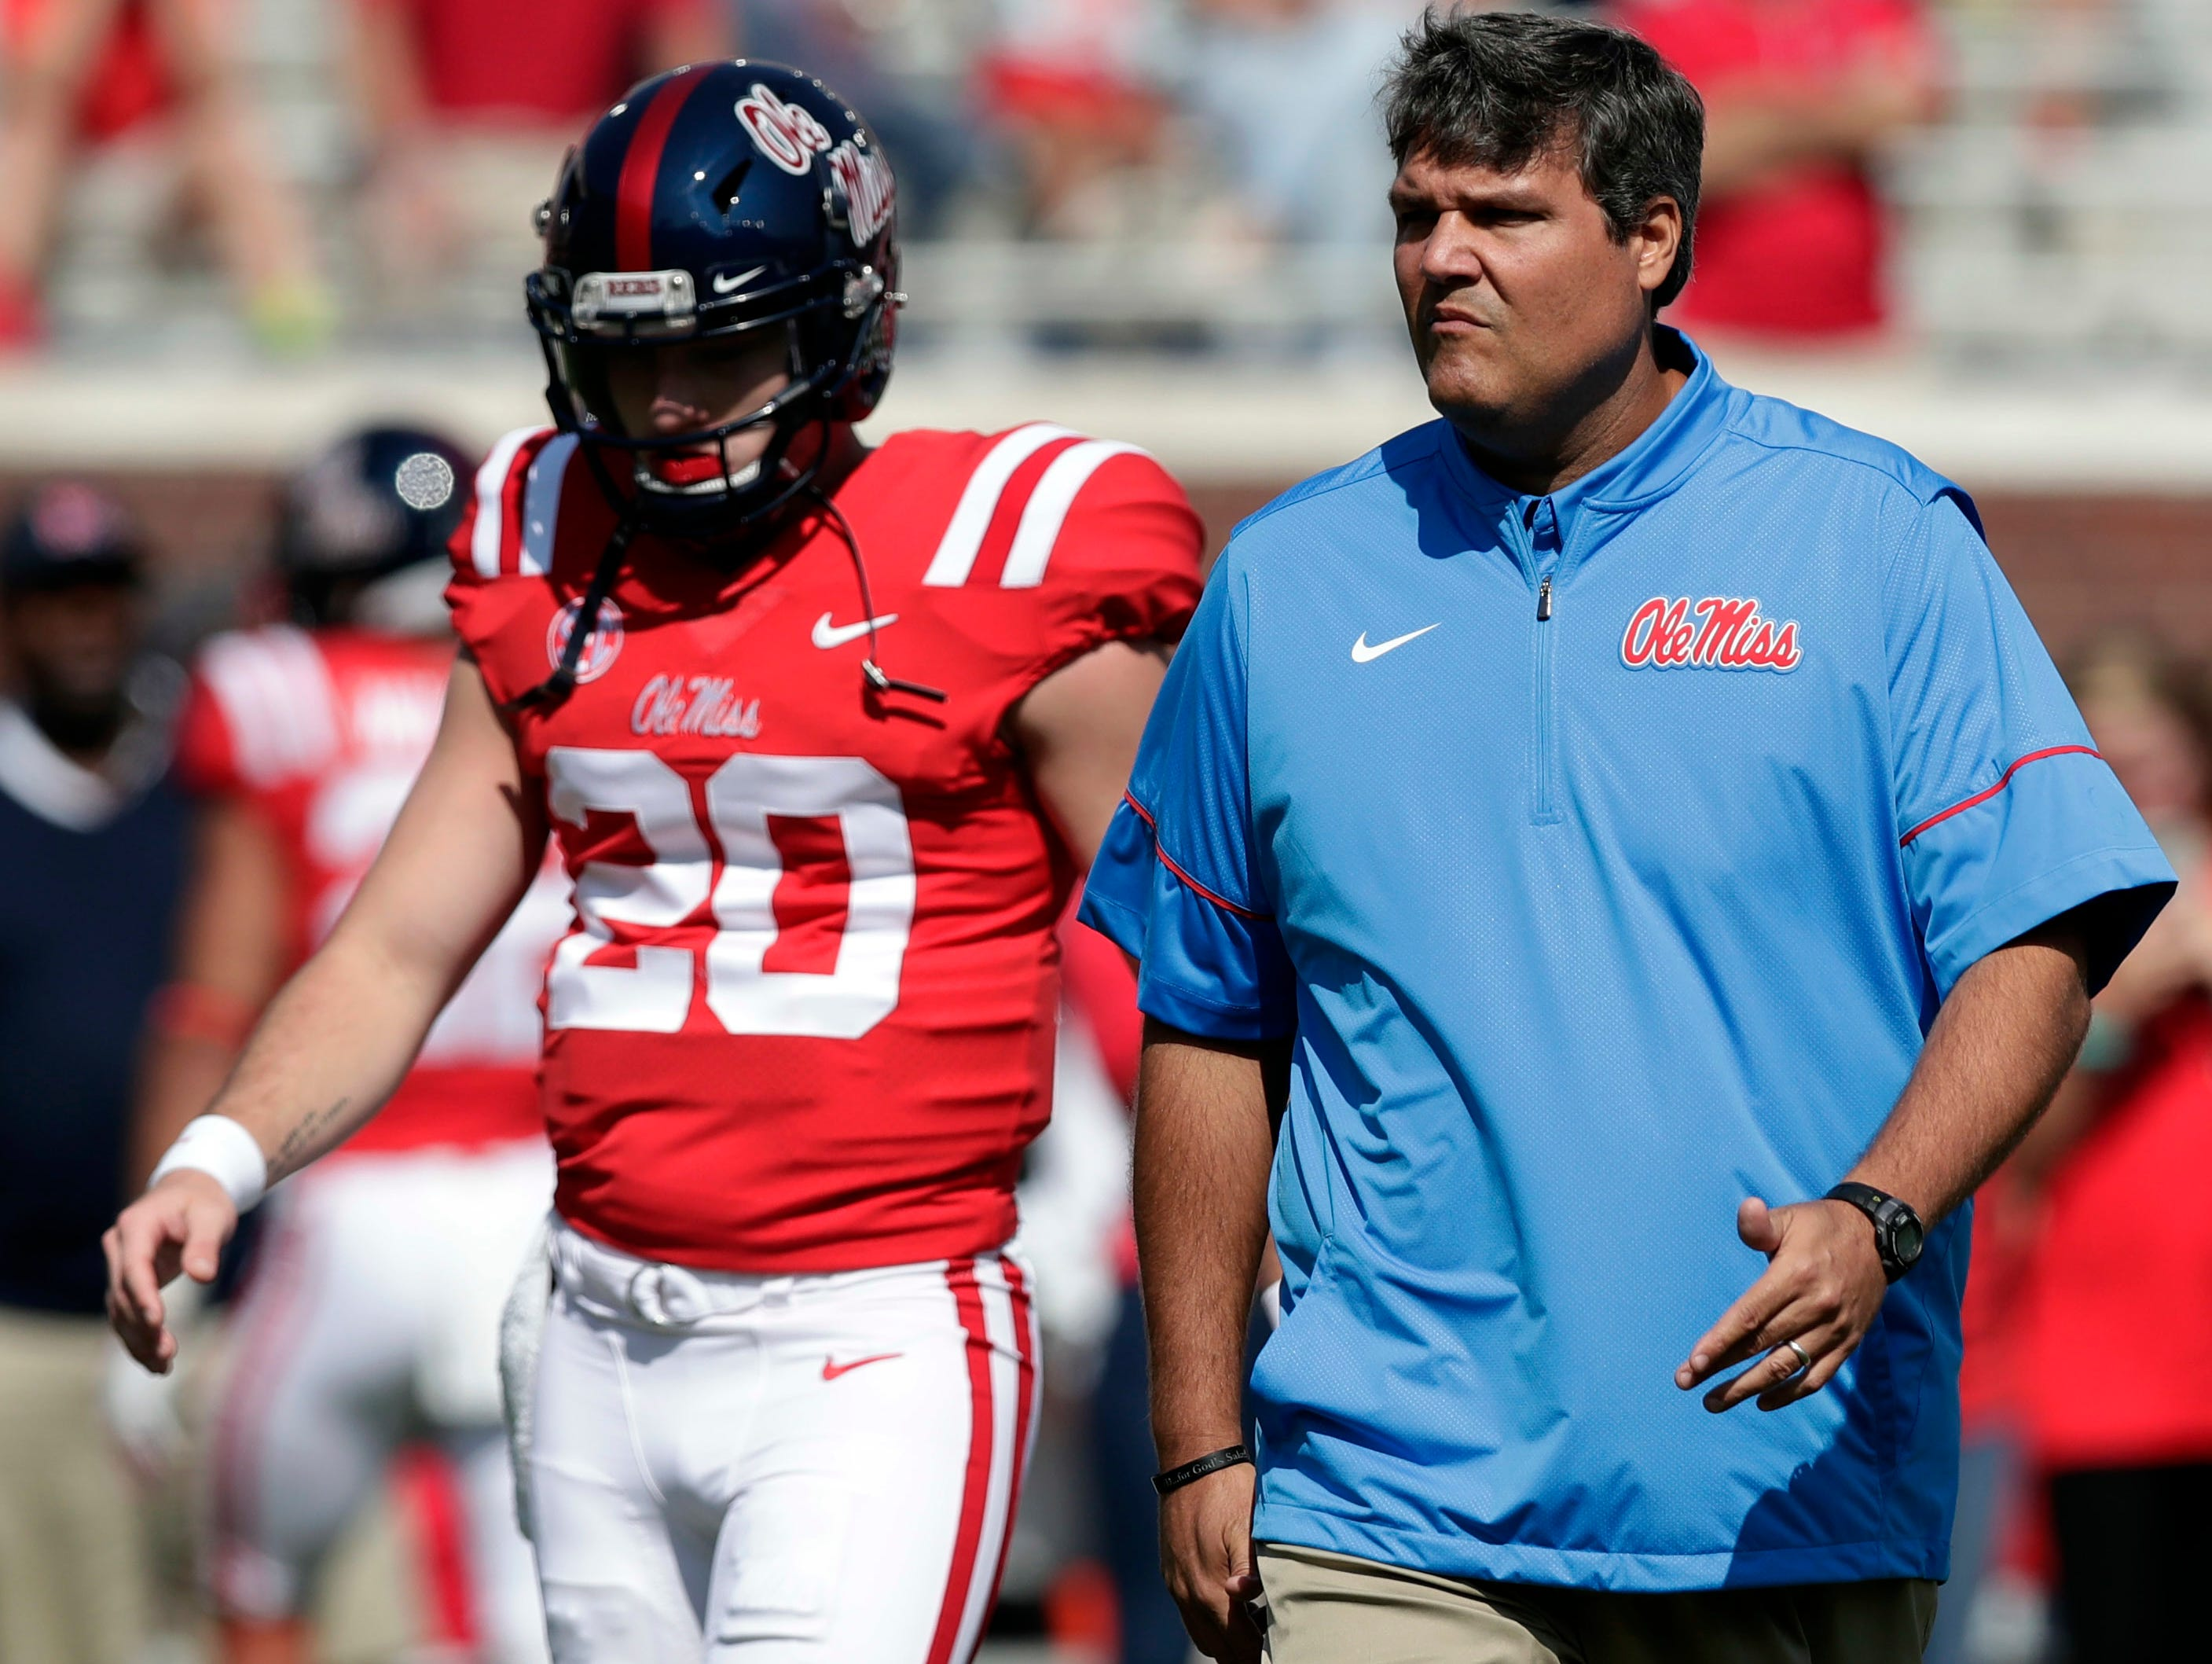 Mississippi quarterback Shea Patterson (20) walks with interim football coach Matt Luke during a pregame drills before an NCAA college football game against UT Martin in Oxford, Miss., Saturday, Sept. 9, 2017.(AP Photo/Rogelio V. Solis)